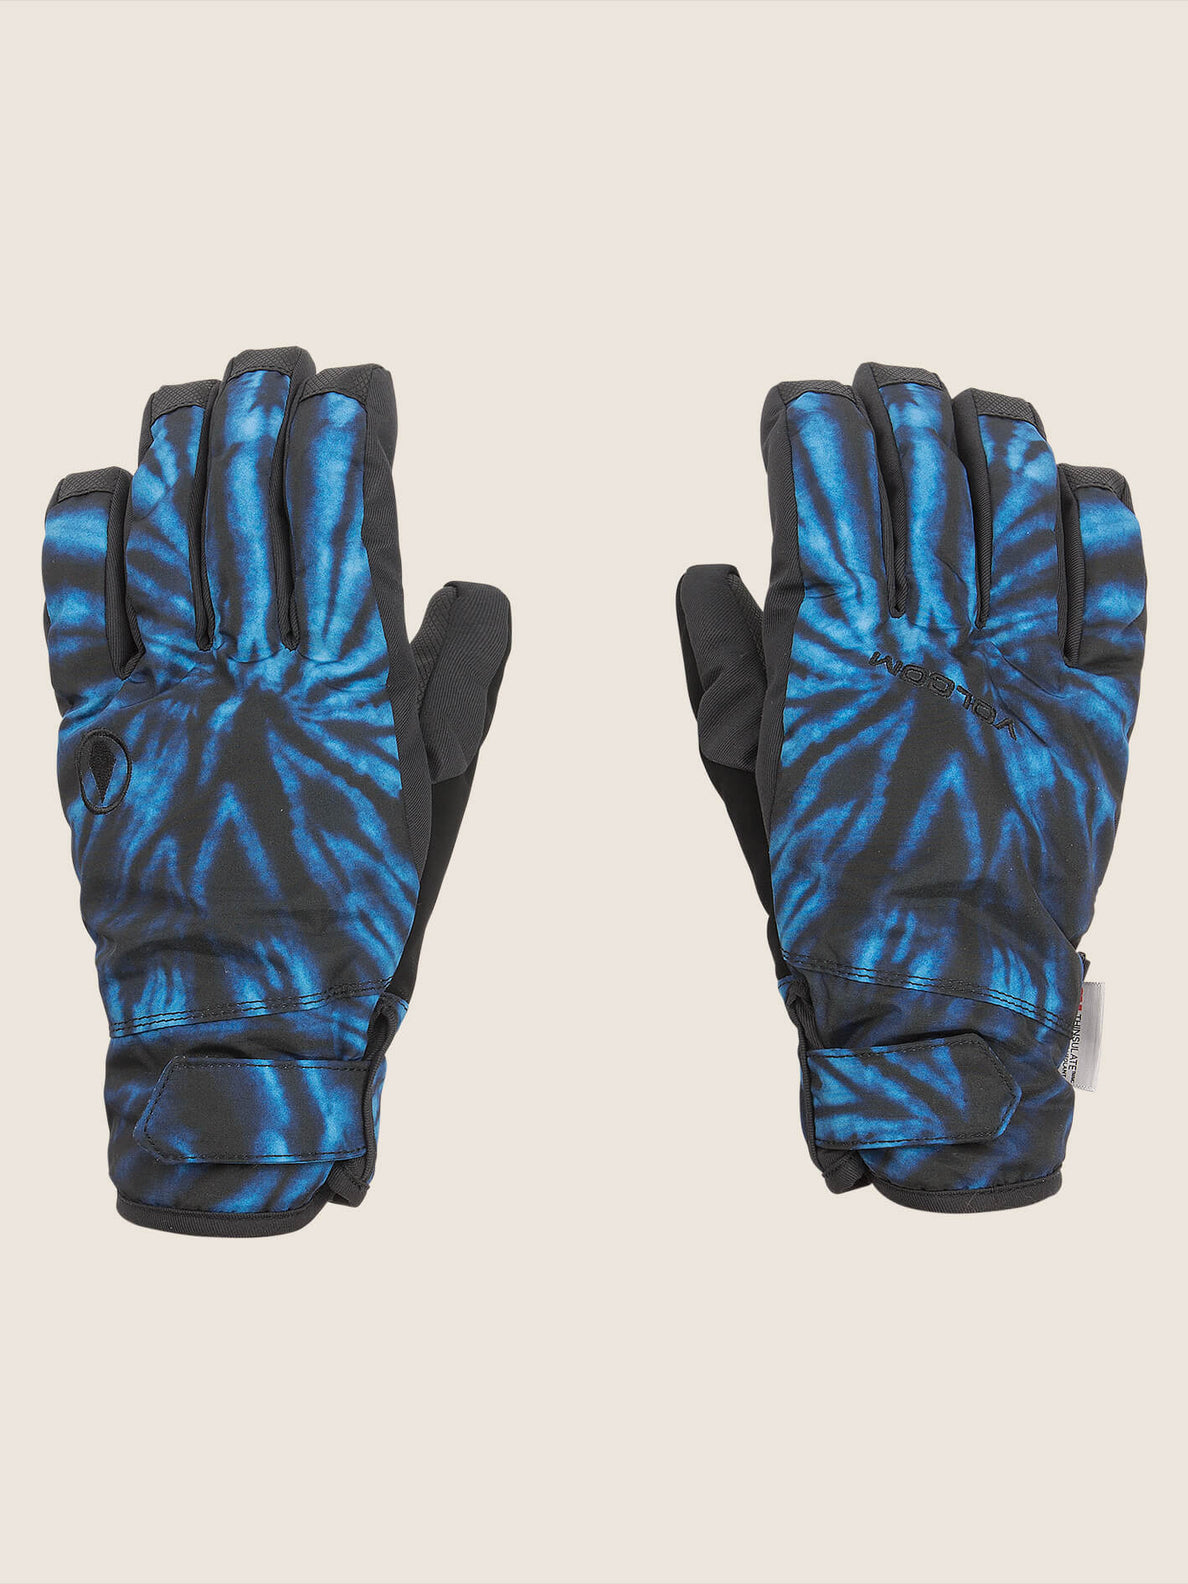 Nyle Glove In Blue Tie-dye, Front View